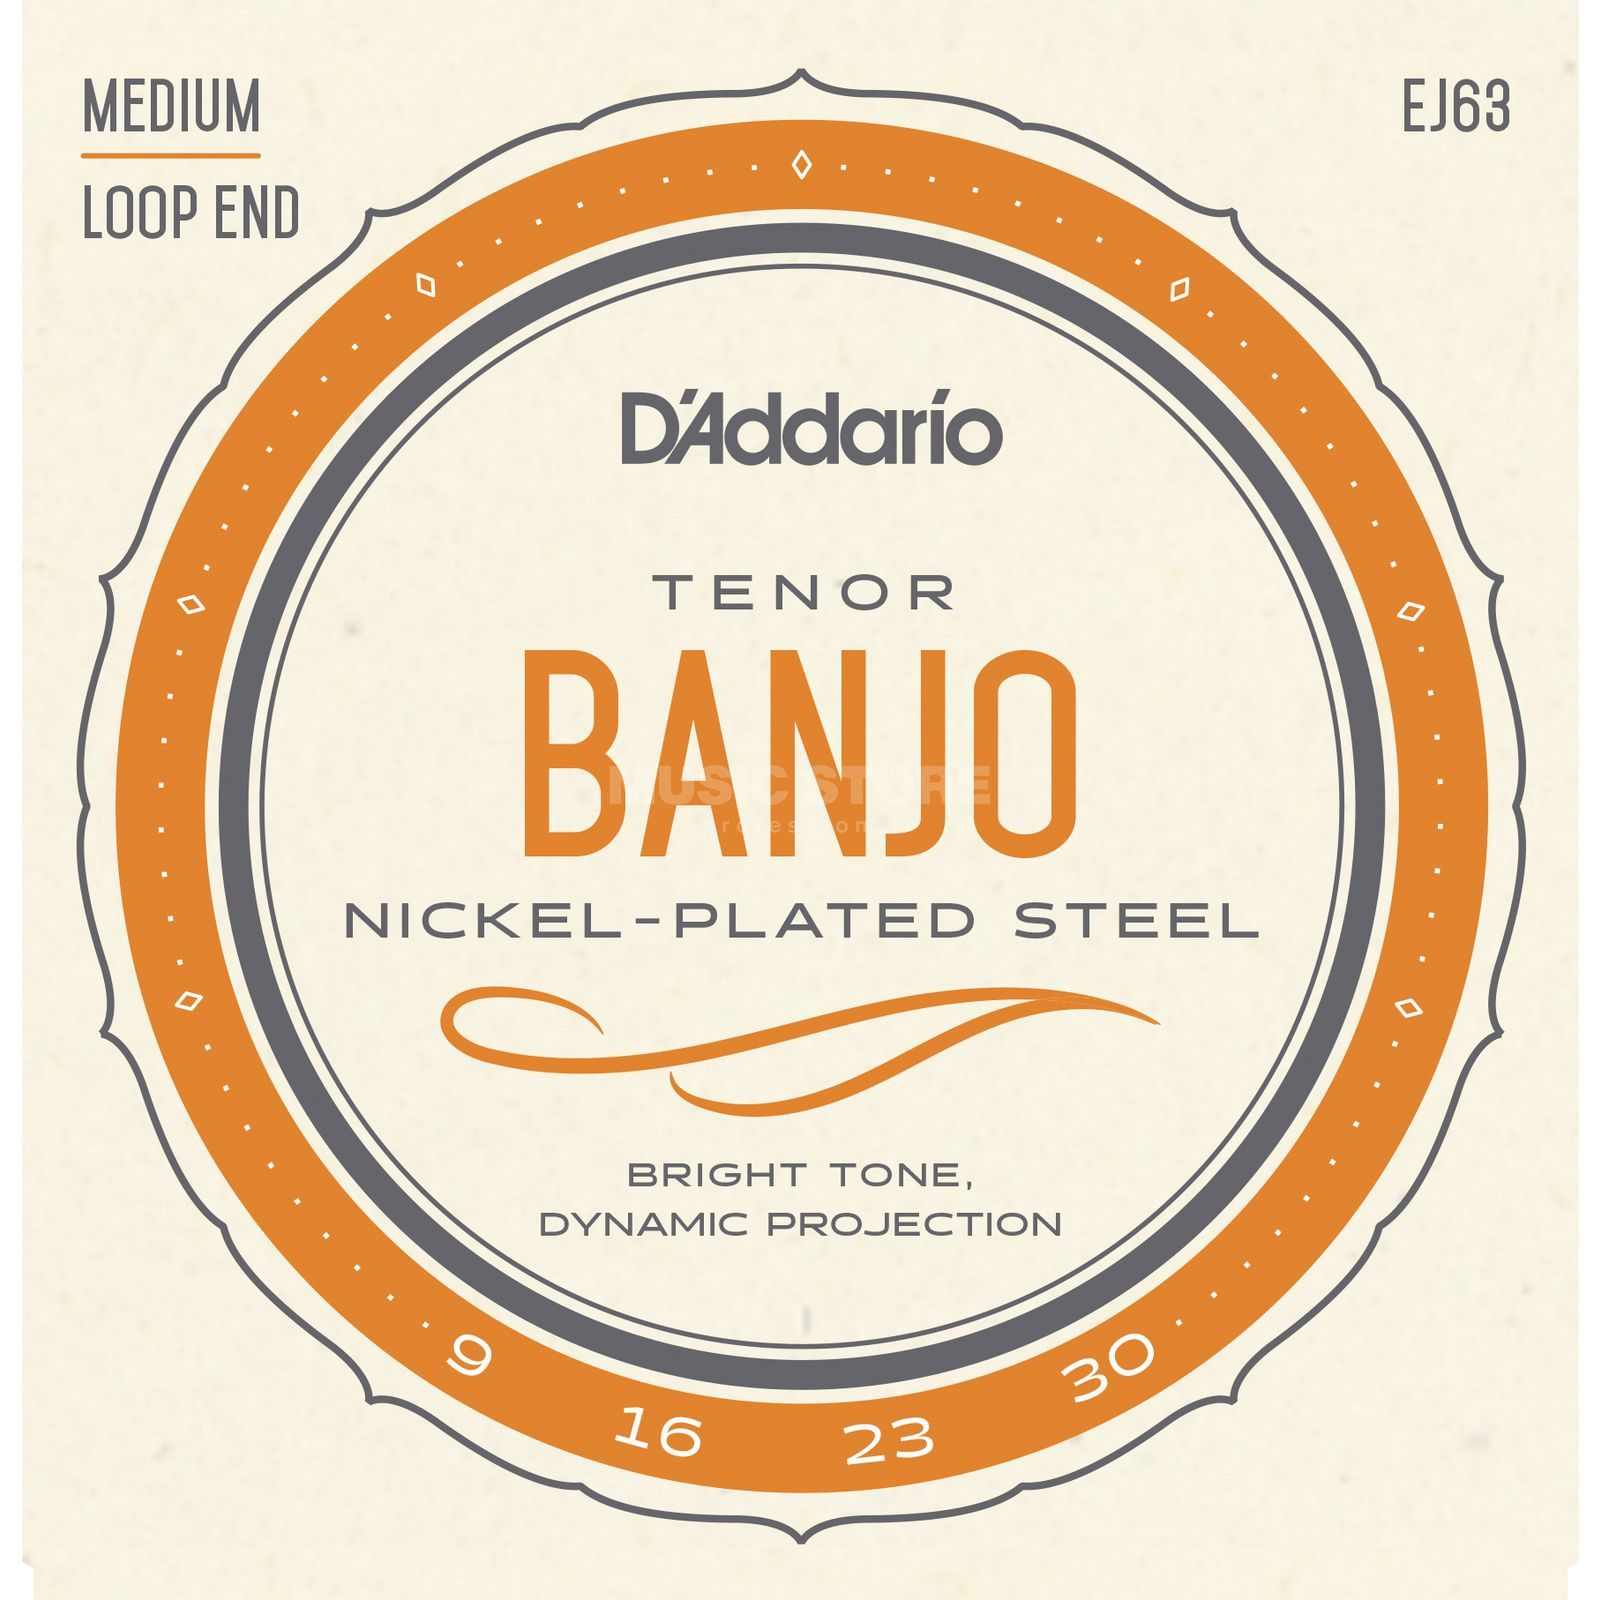 D'Addario Banjo Saiten EJ63 Tenor 4-String Nickel Loop End Produktbild